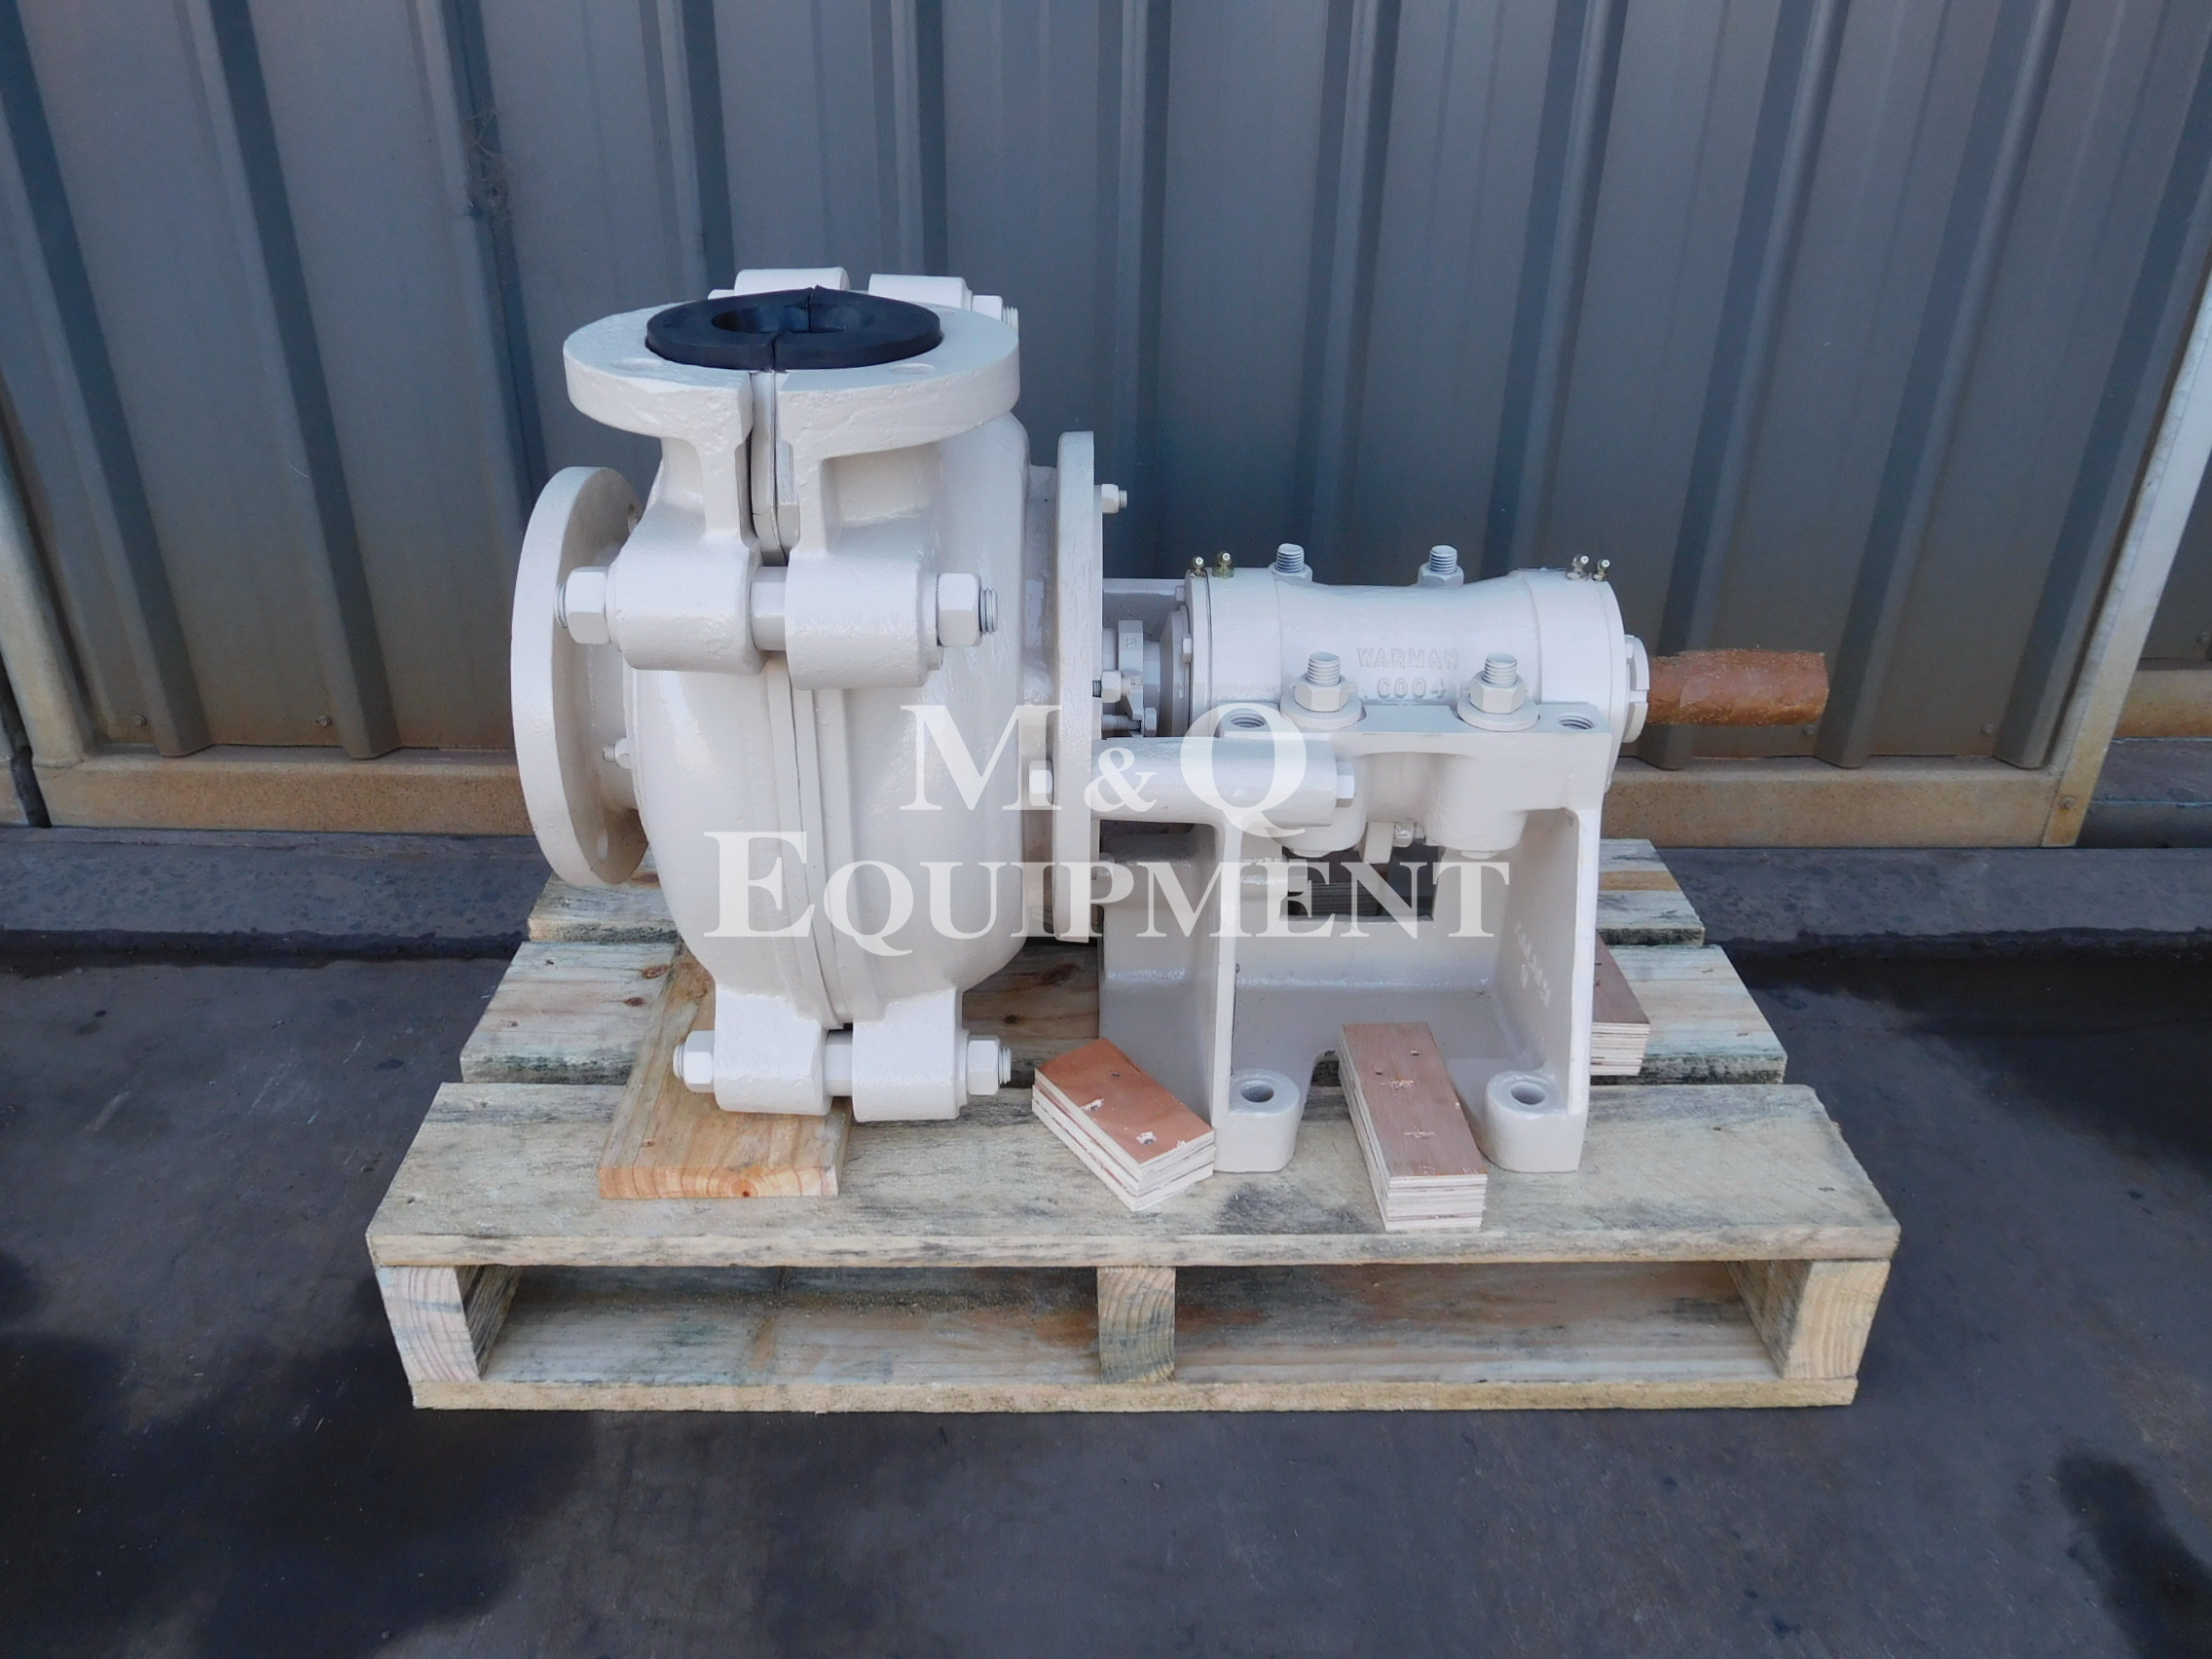 Sold Item 483 - Rebuilt 4/3 CAH Warman Pump